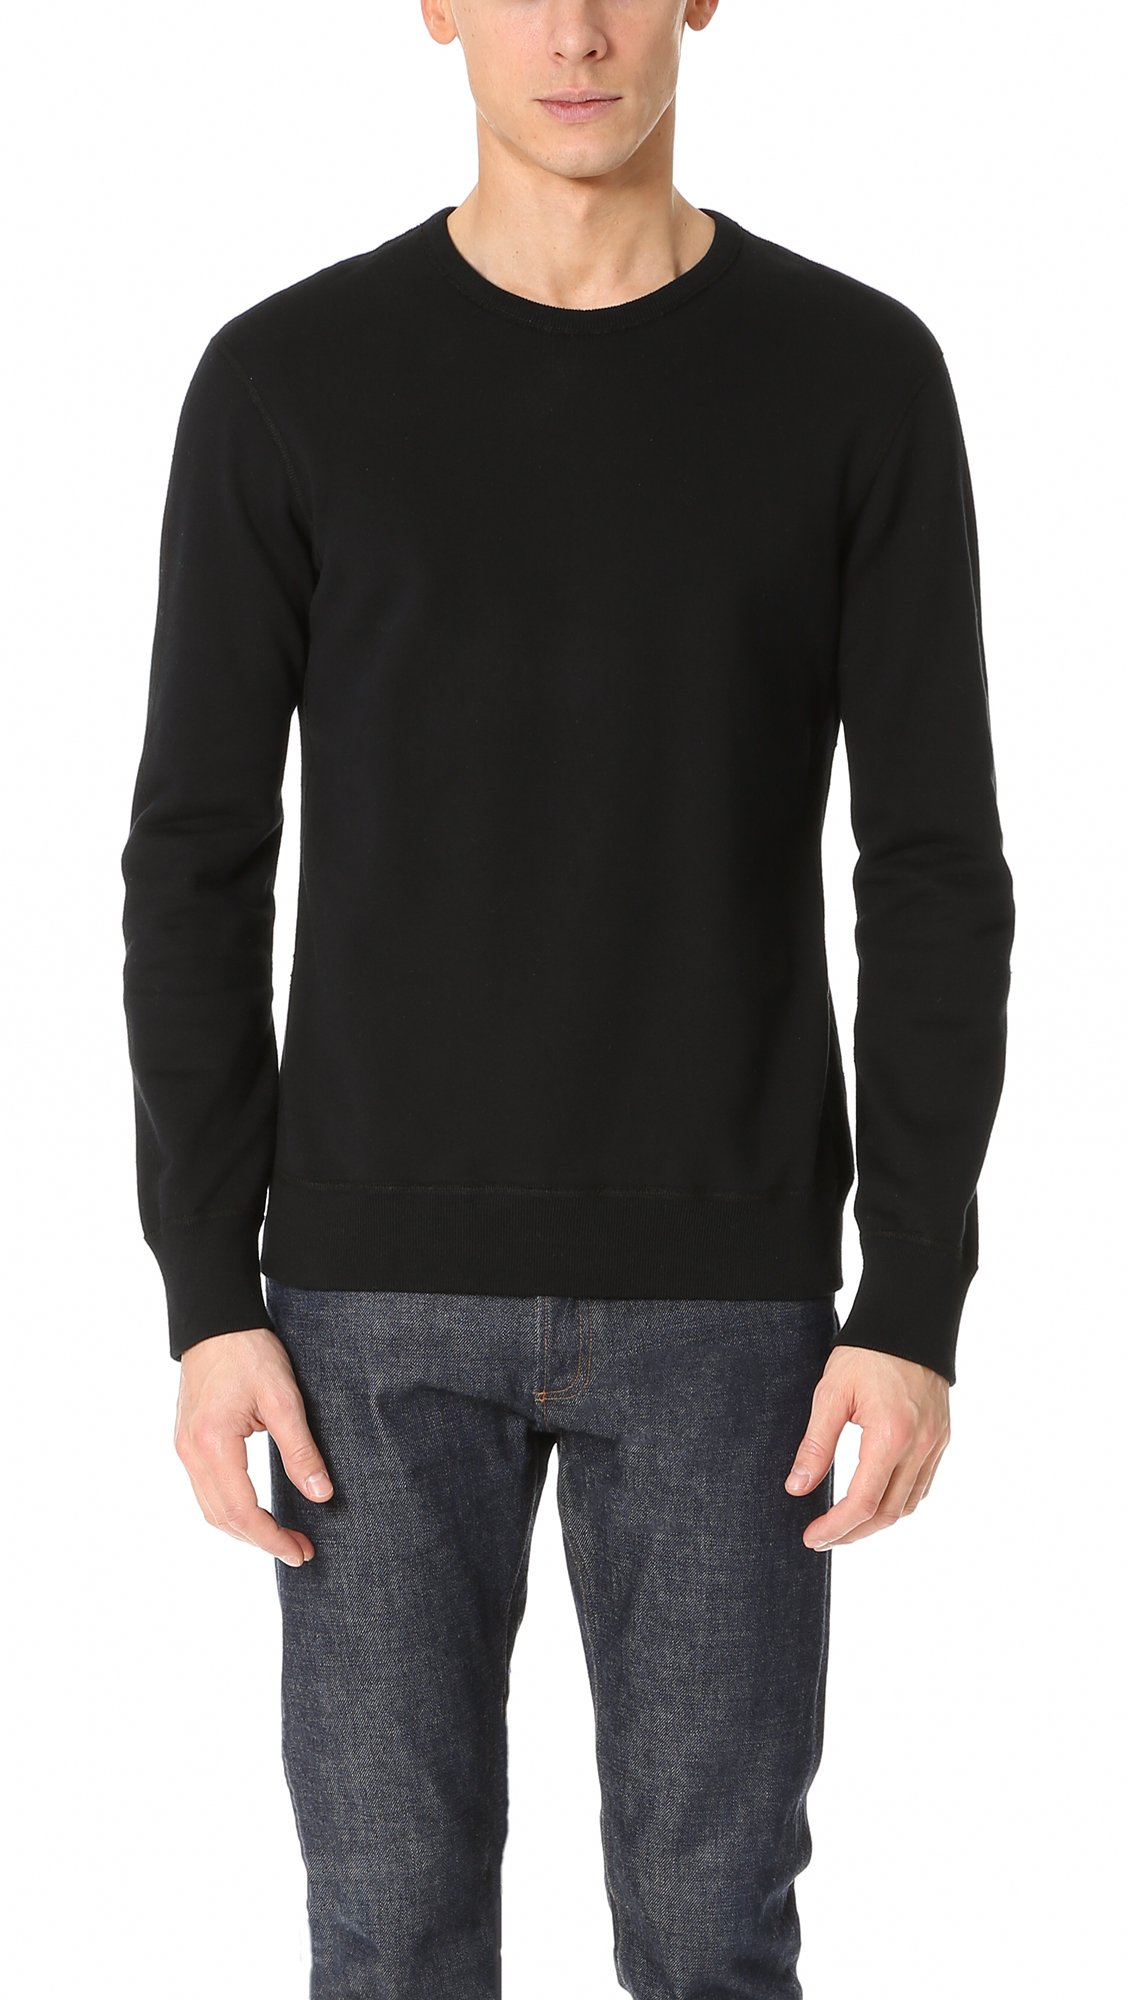 Reigning Champ Men's Mid Weight Terry Sweatshirt, Black, X-Large